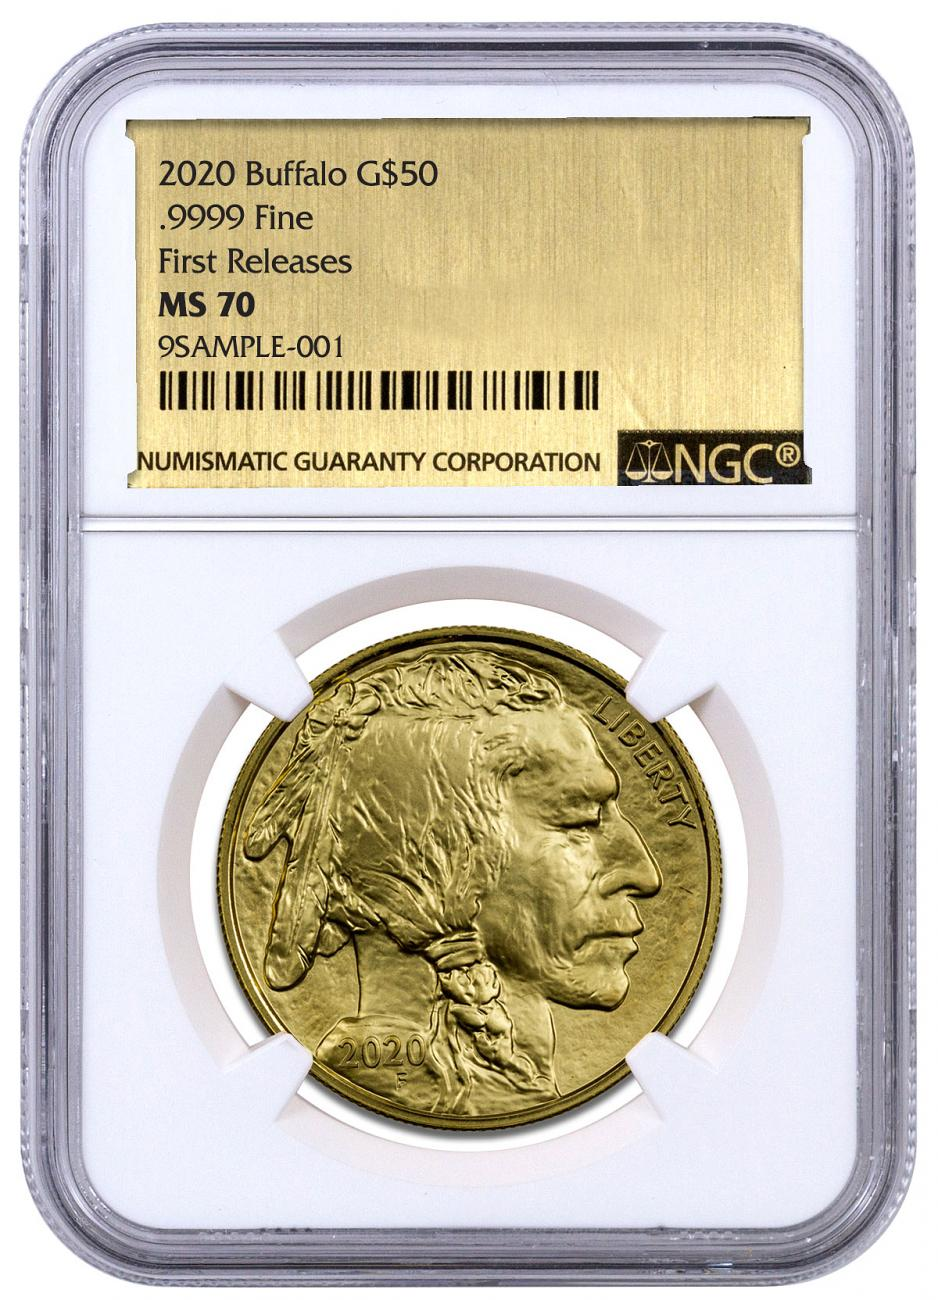 2020 1 oz Gold American Buffalo $50 Coin NGC MS70 FR Exclusive Gold Foil Label